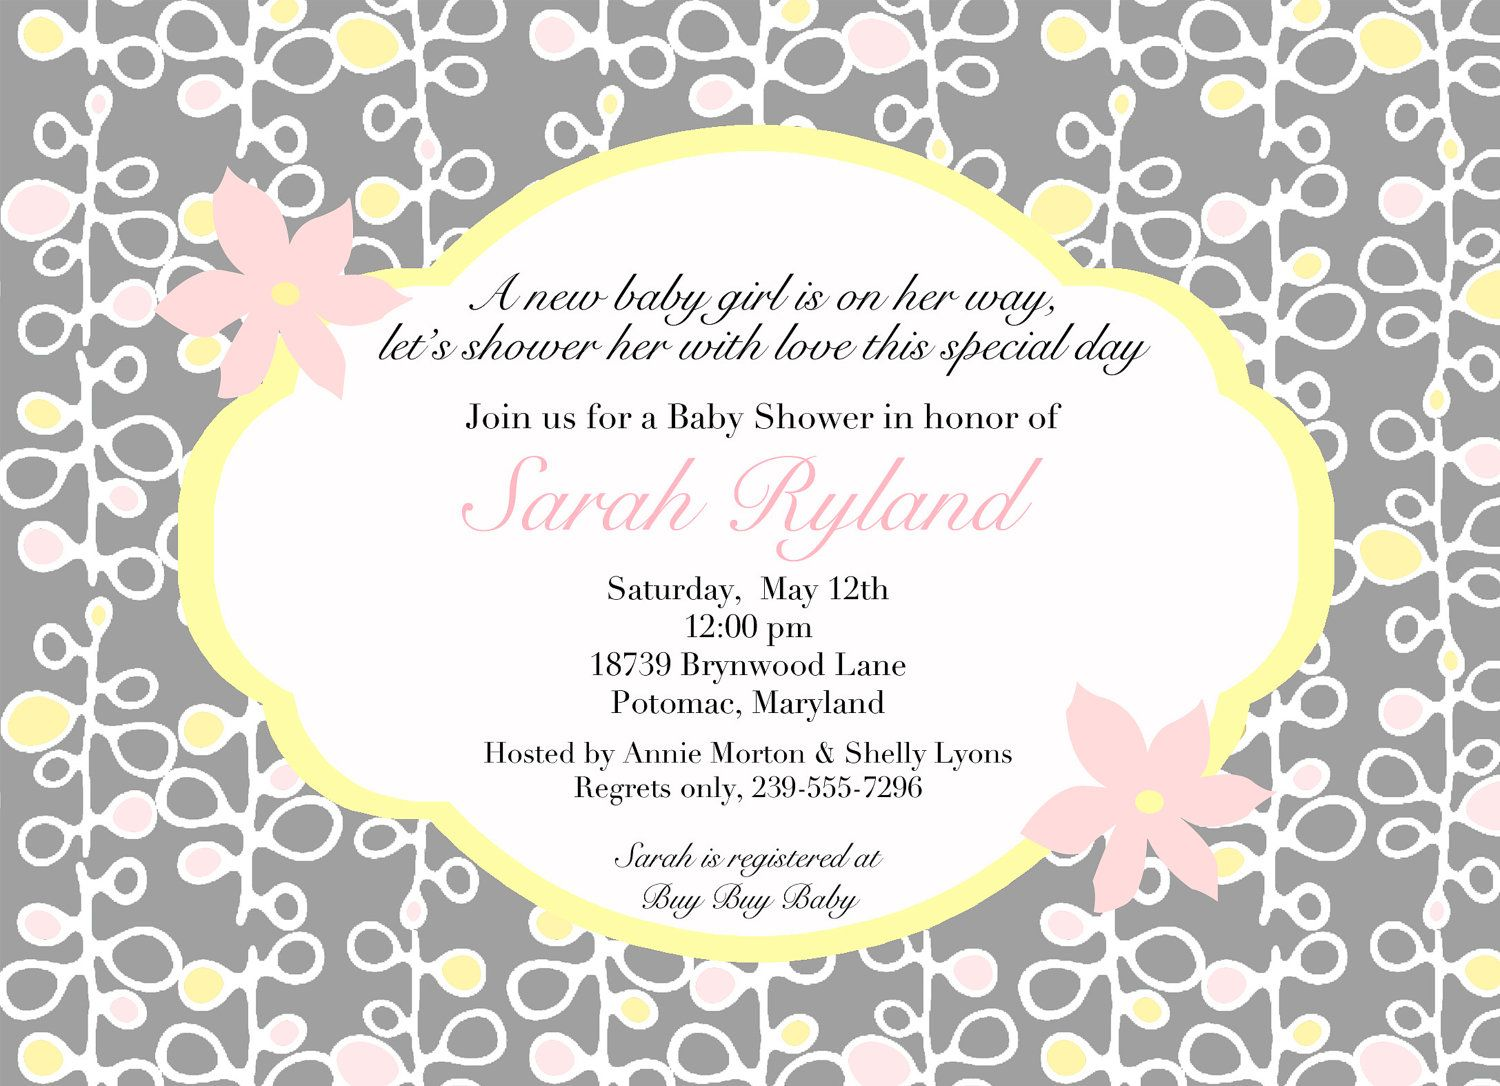 coed baby shower invitation wording | pink and yellowa baby shower, Baby shower invitations